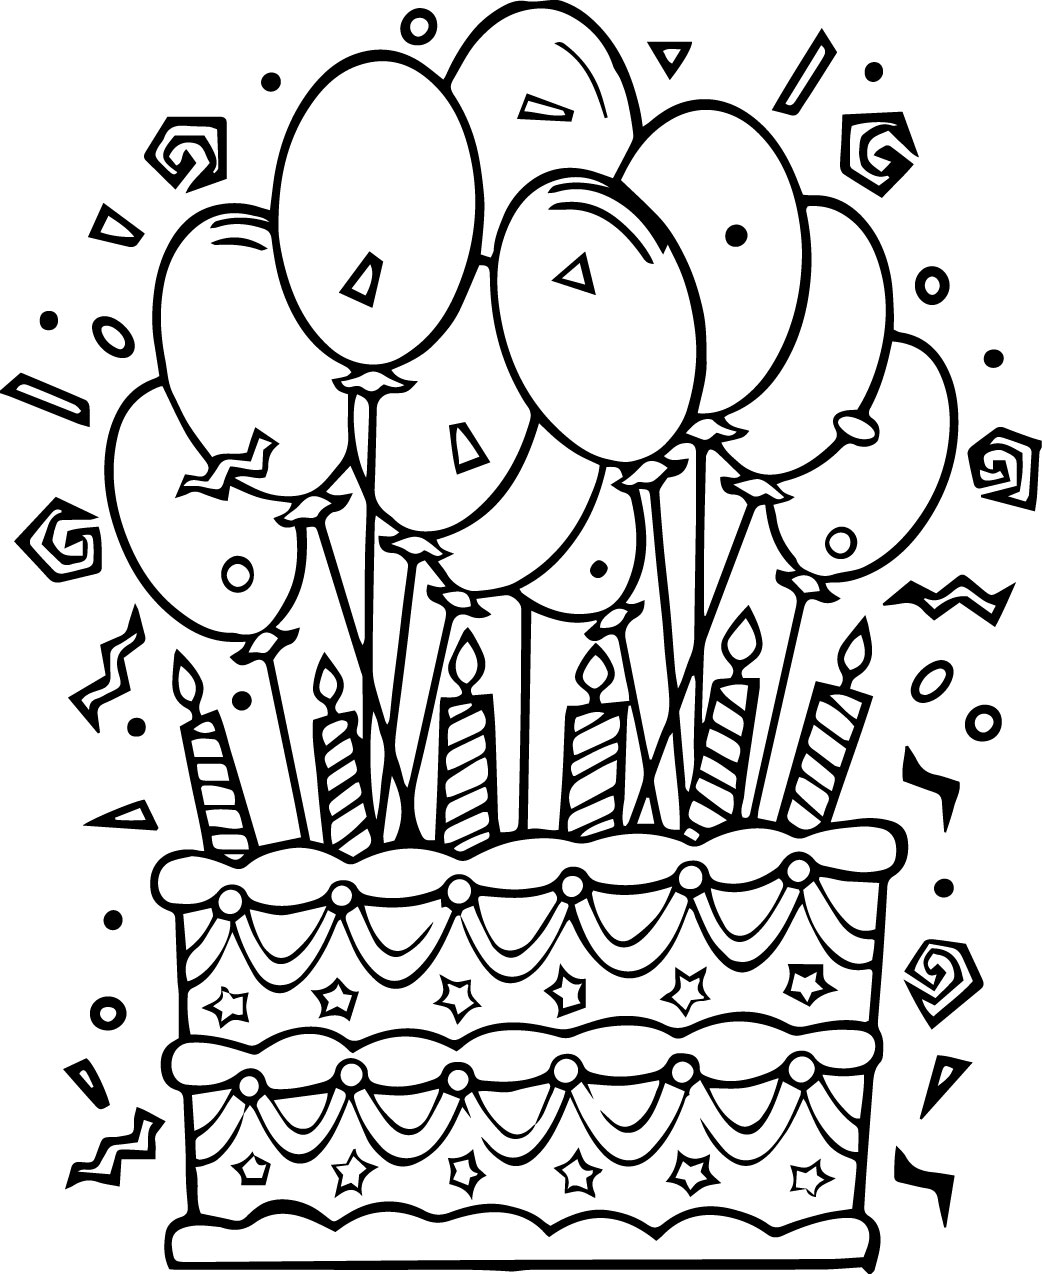 happy birthday cake coloring slice the cake that will be packed birthday coloring pages cake coloring birthday happy